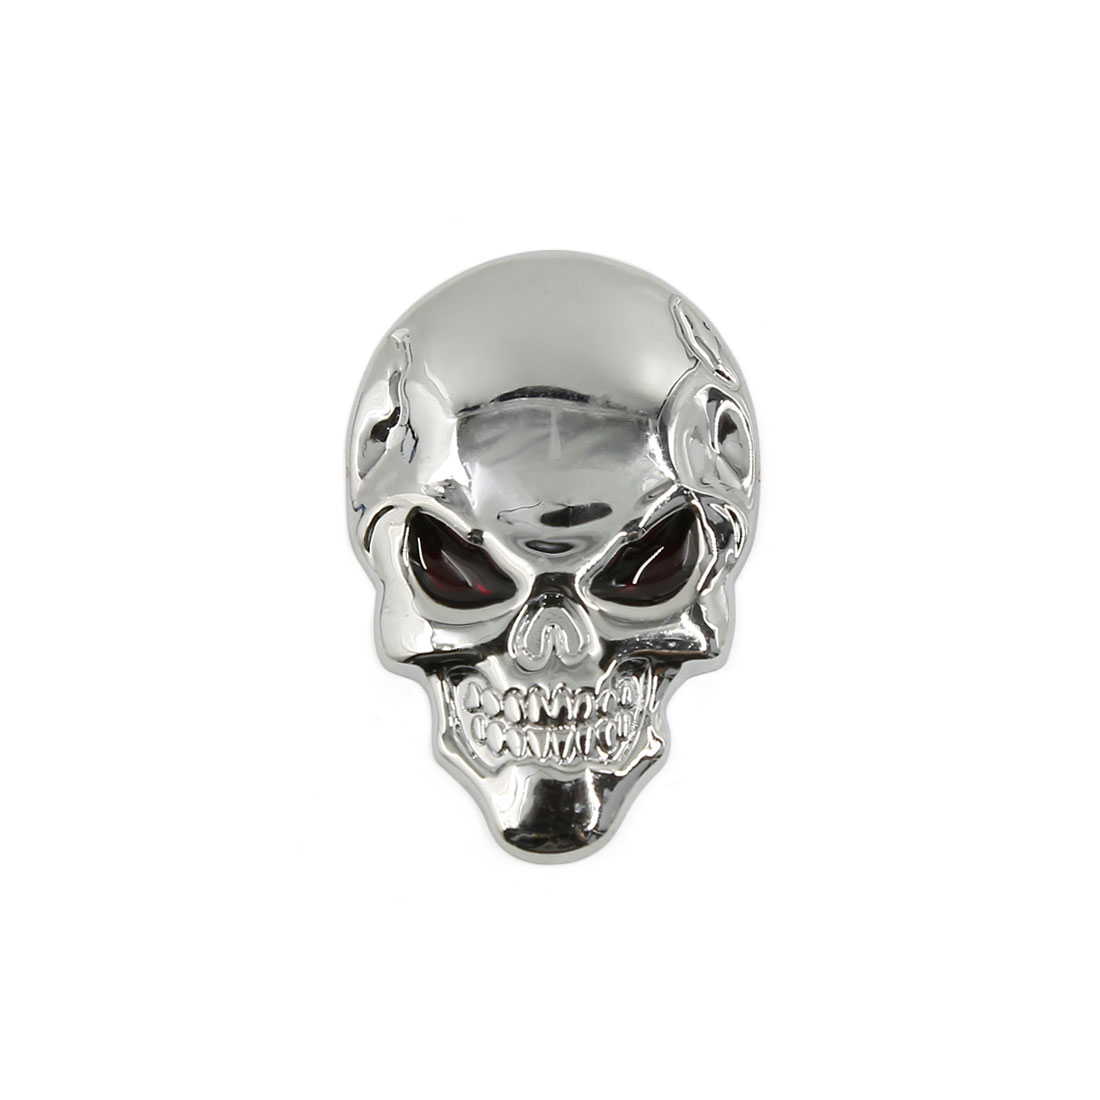 Metal 3D Skull Bone Shaped Adhesive Car Exterior Decorative Sticker Sliver Tone